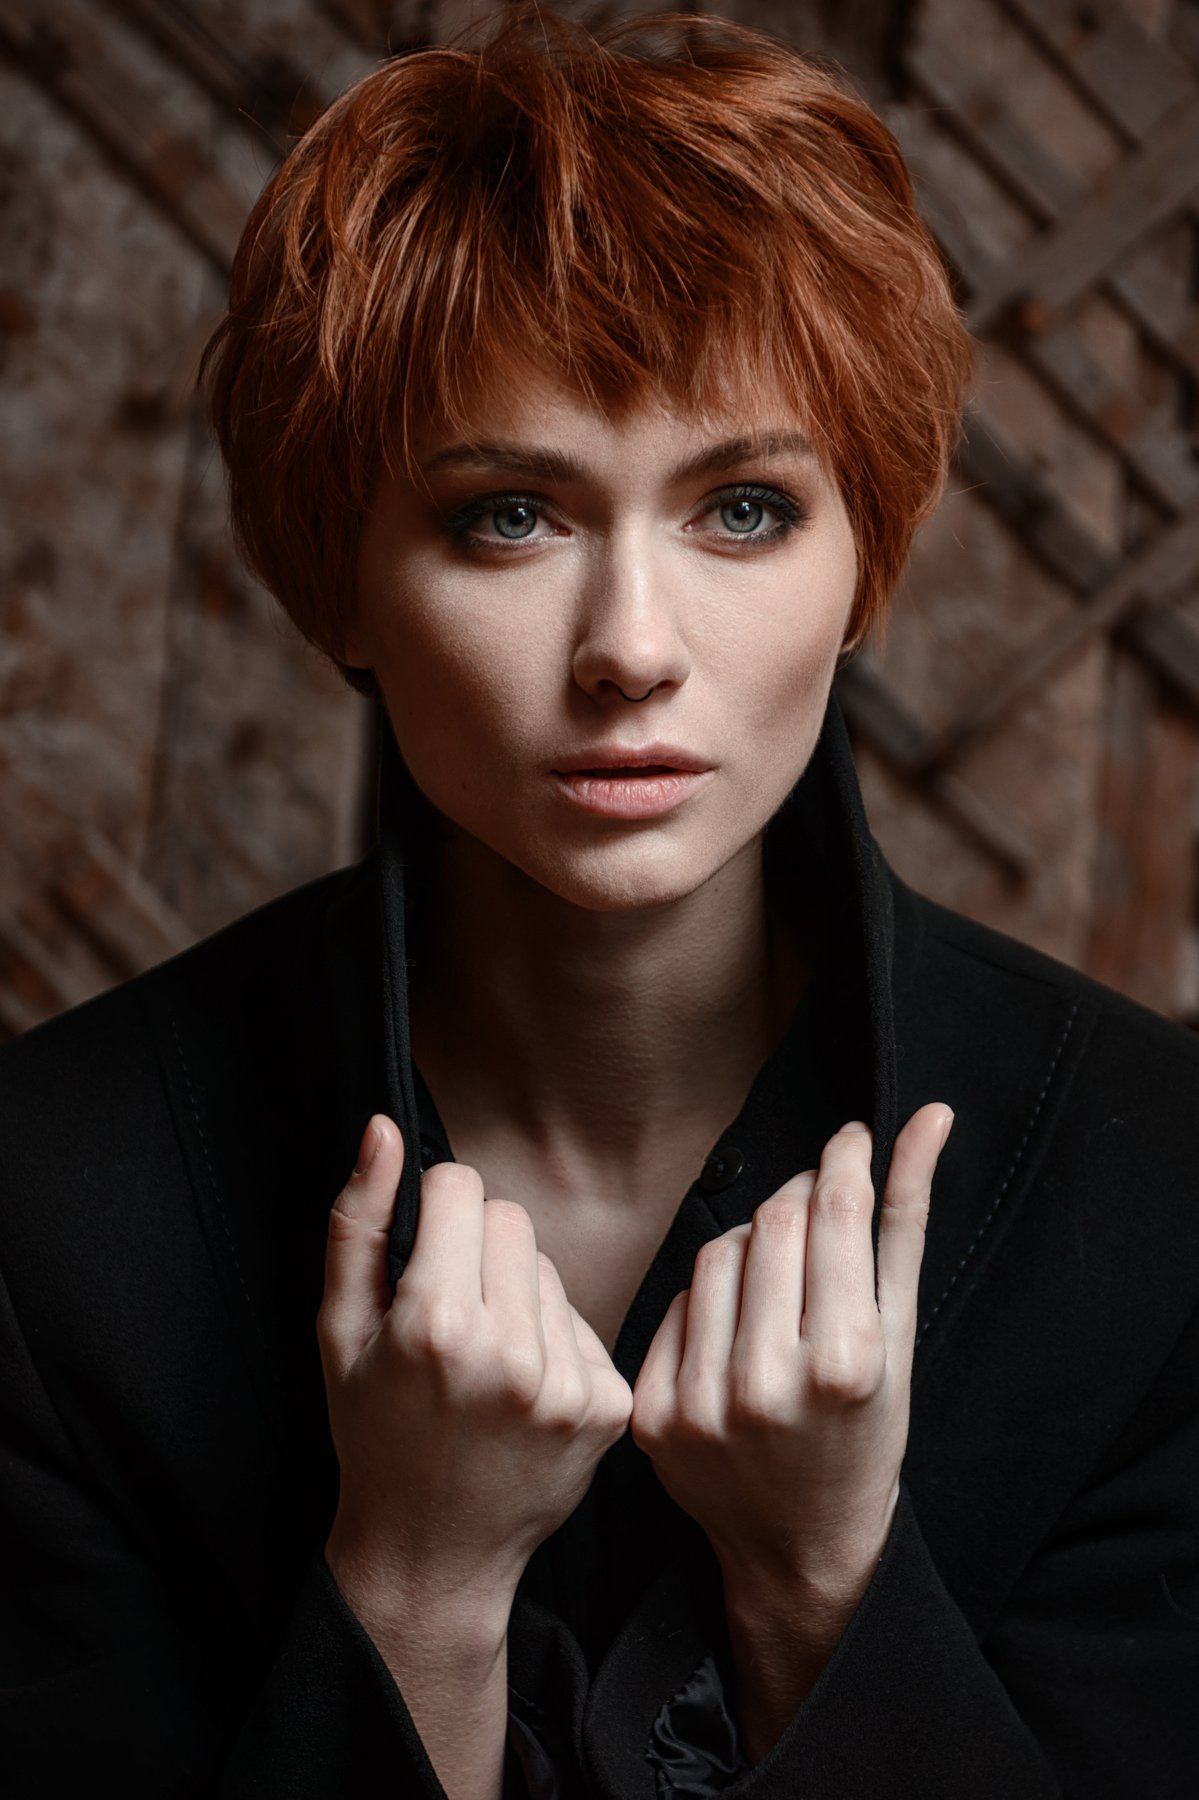 model, redhead, look no camera, posing, girl, red hair, nikon, portrait, eyes, lips, hair, look, deep look, hands, Анна Дегтярёва